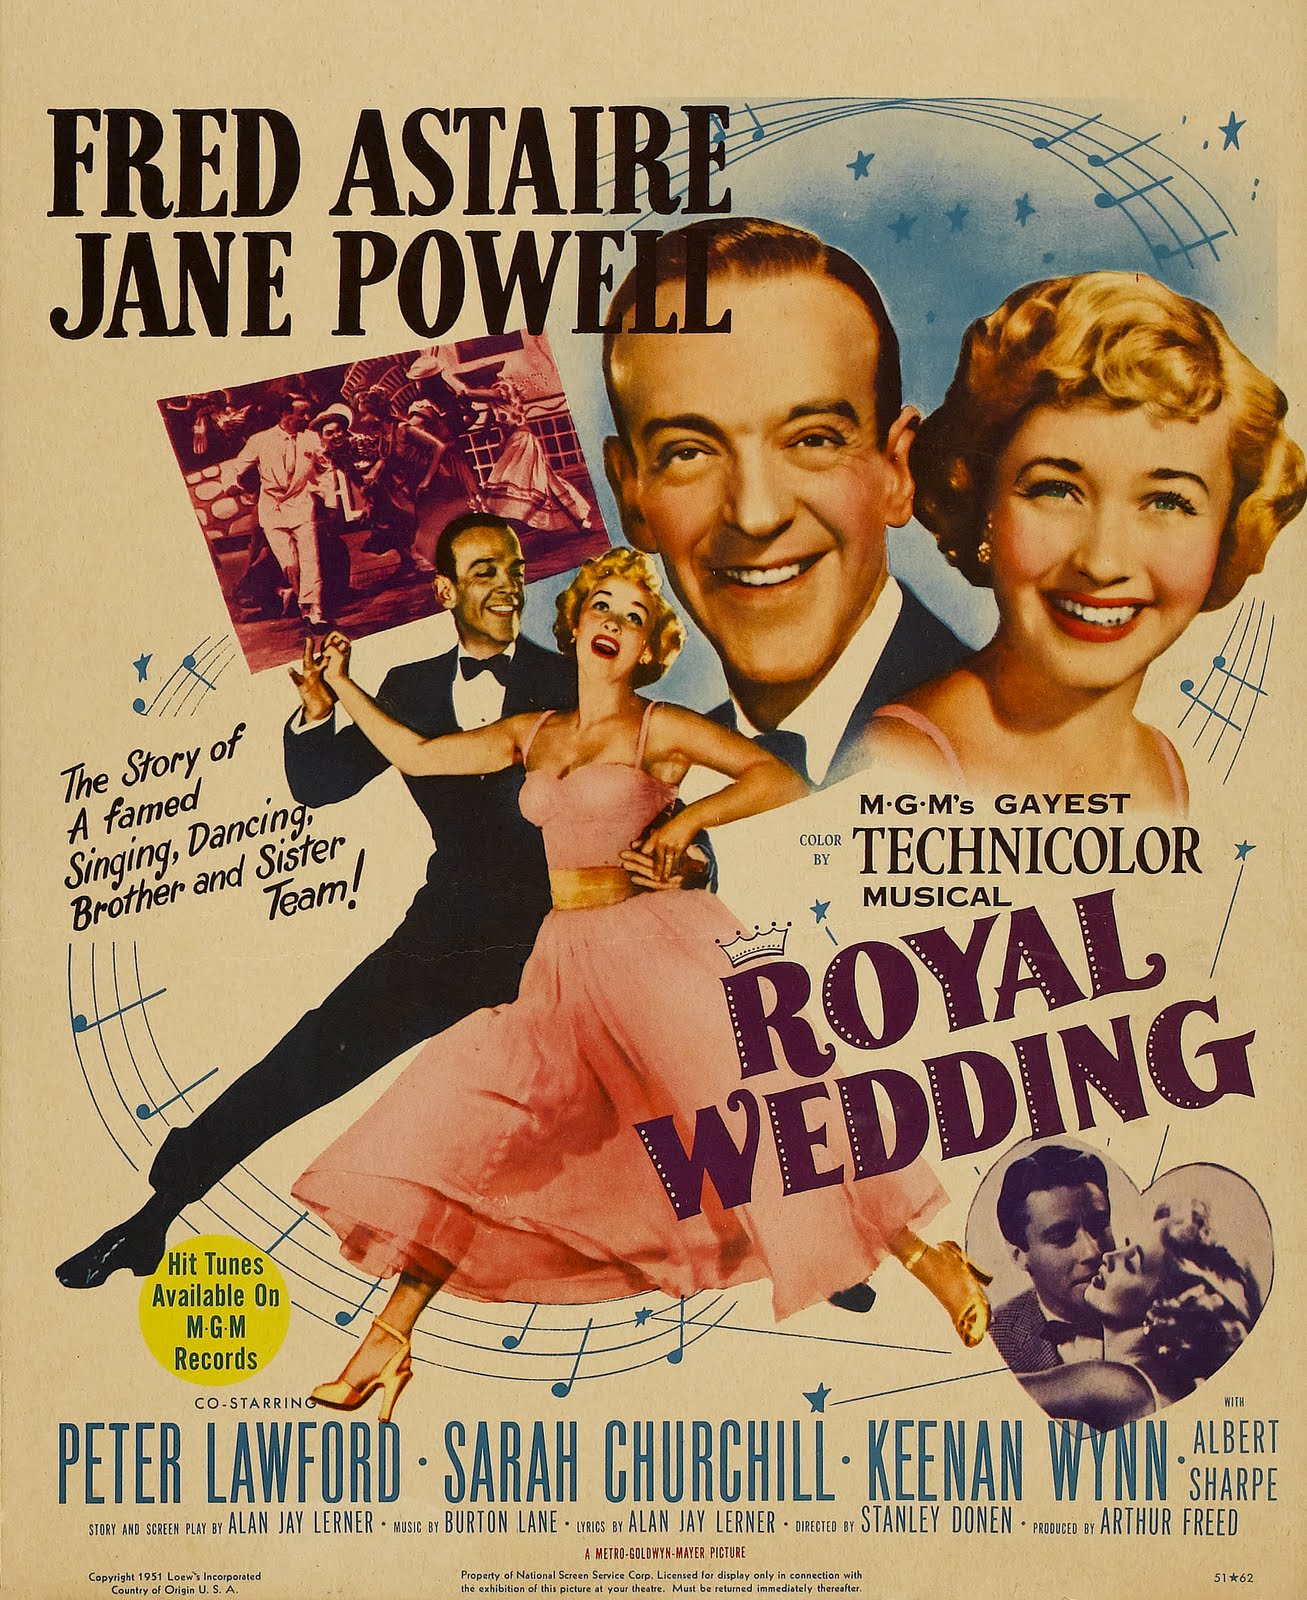 Royal Wedding (1950) by Stanley Donen with Fred Astaire & Jane Powell dans Cinema royal+wedding